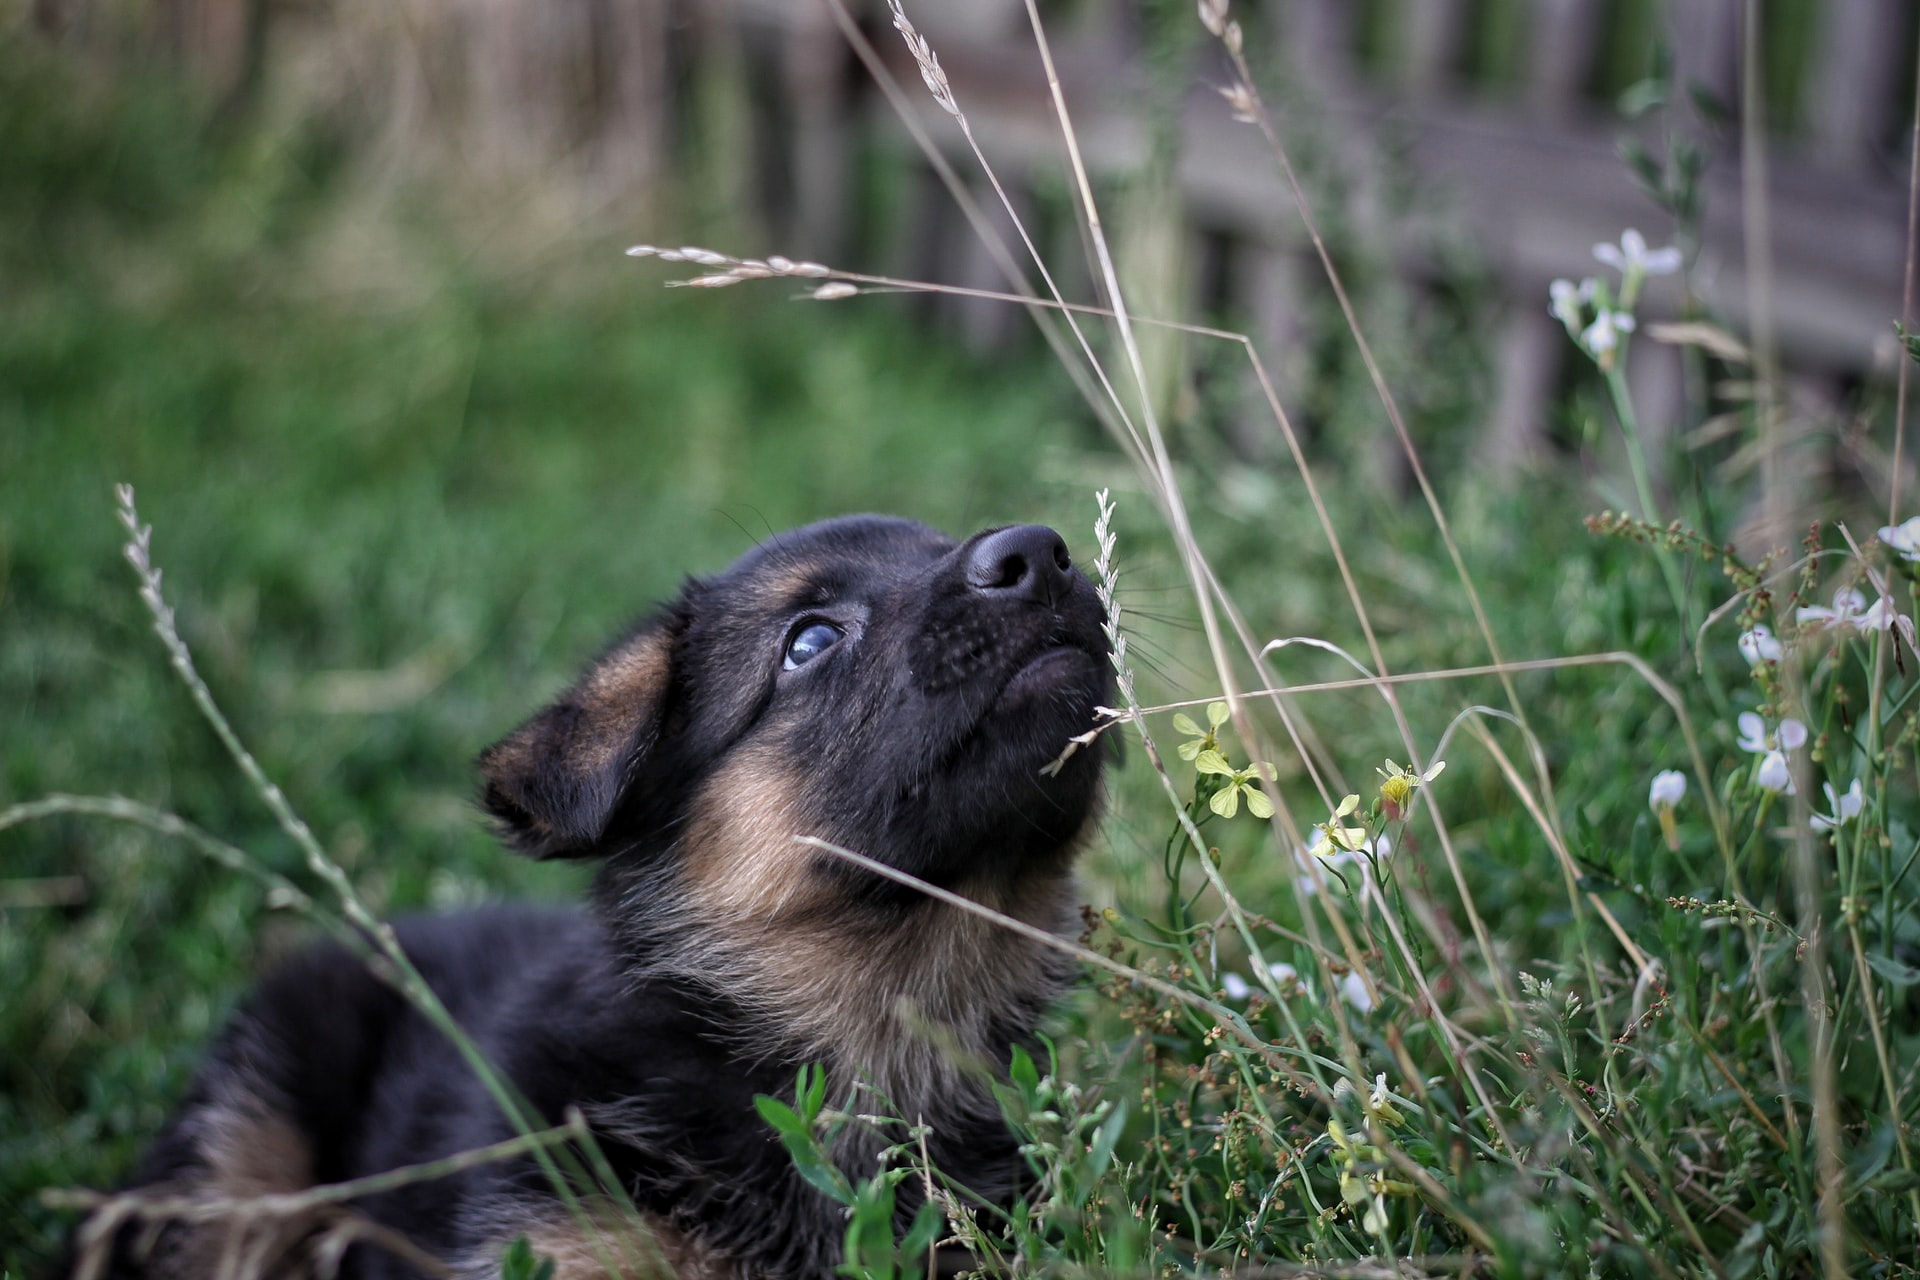 A puppy looking up